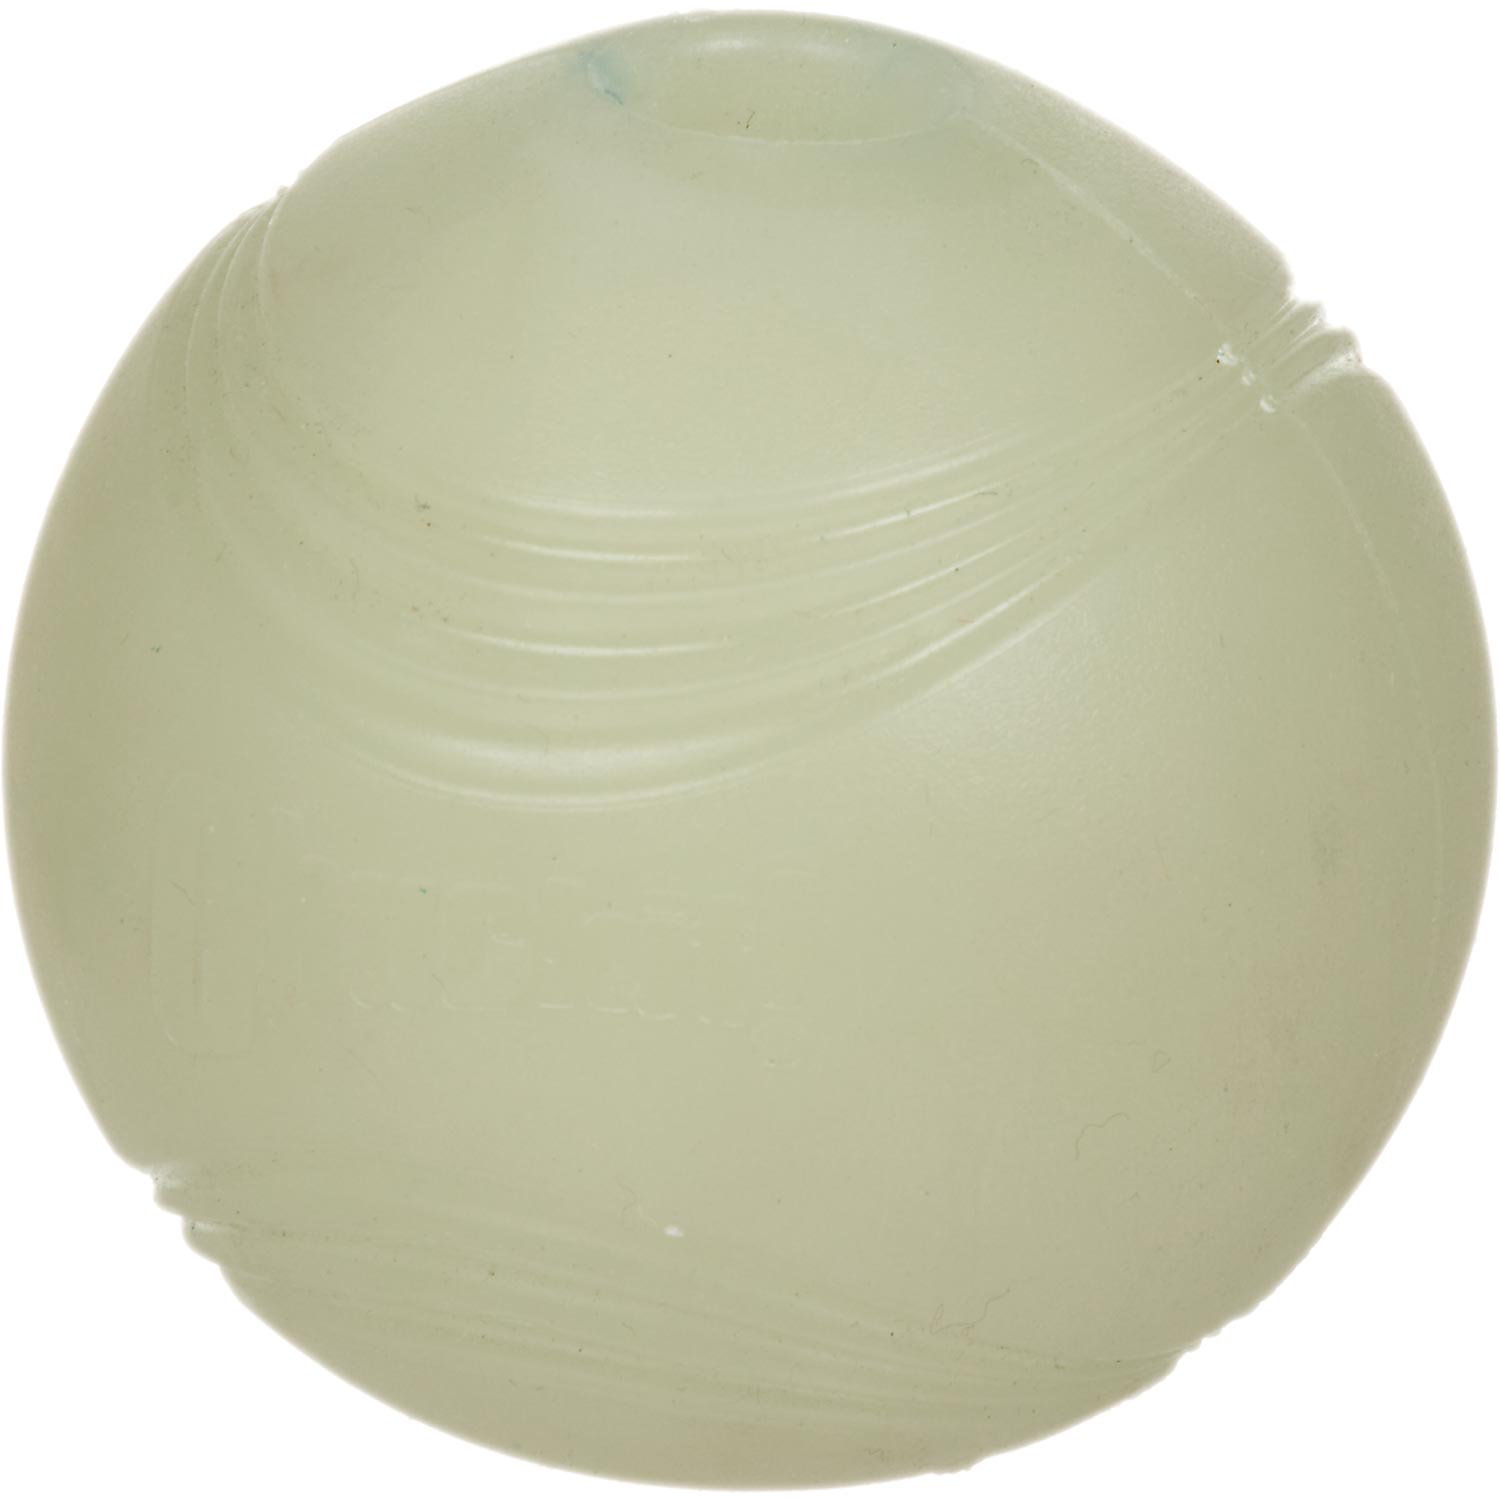 "Chuckit! Max Glow Rubber Ball (Large; 3"" Diameter; Use with Chuckit! Mega Ball Launcher)"